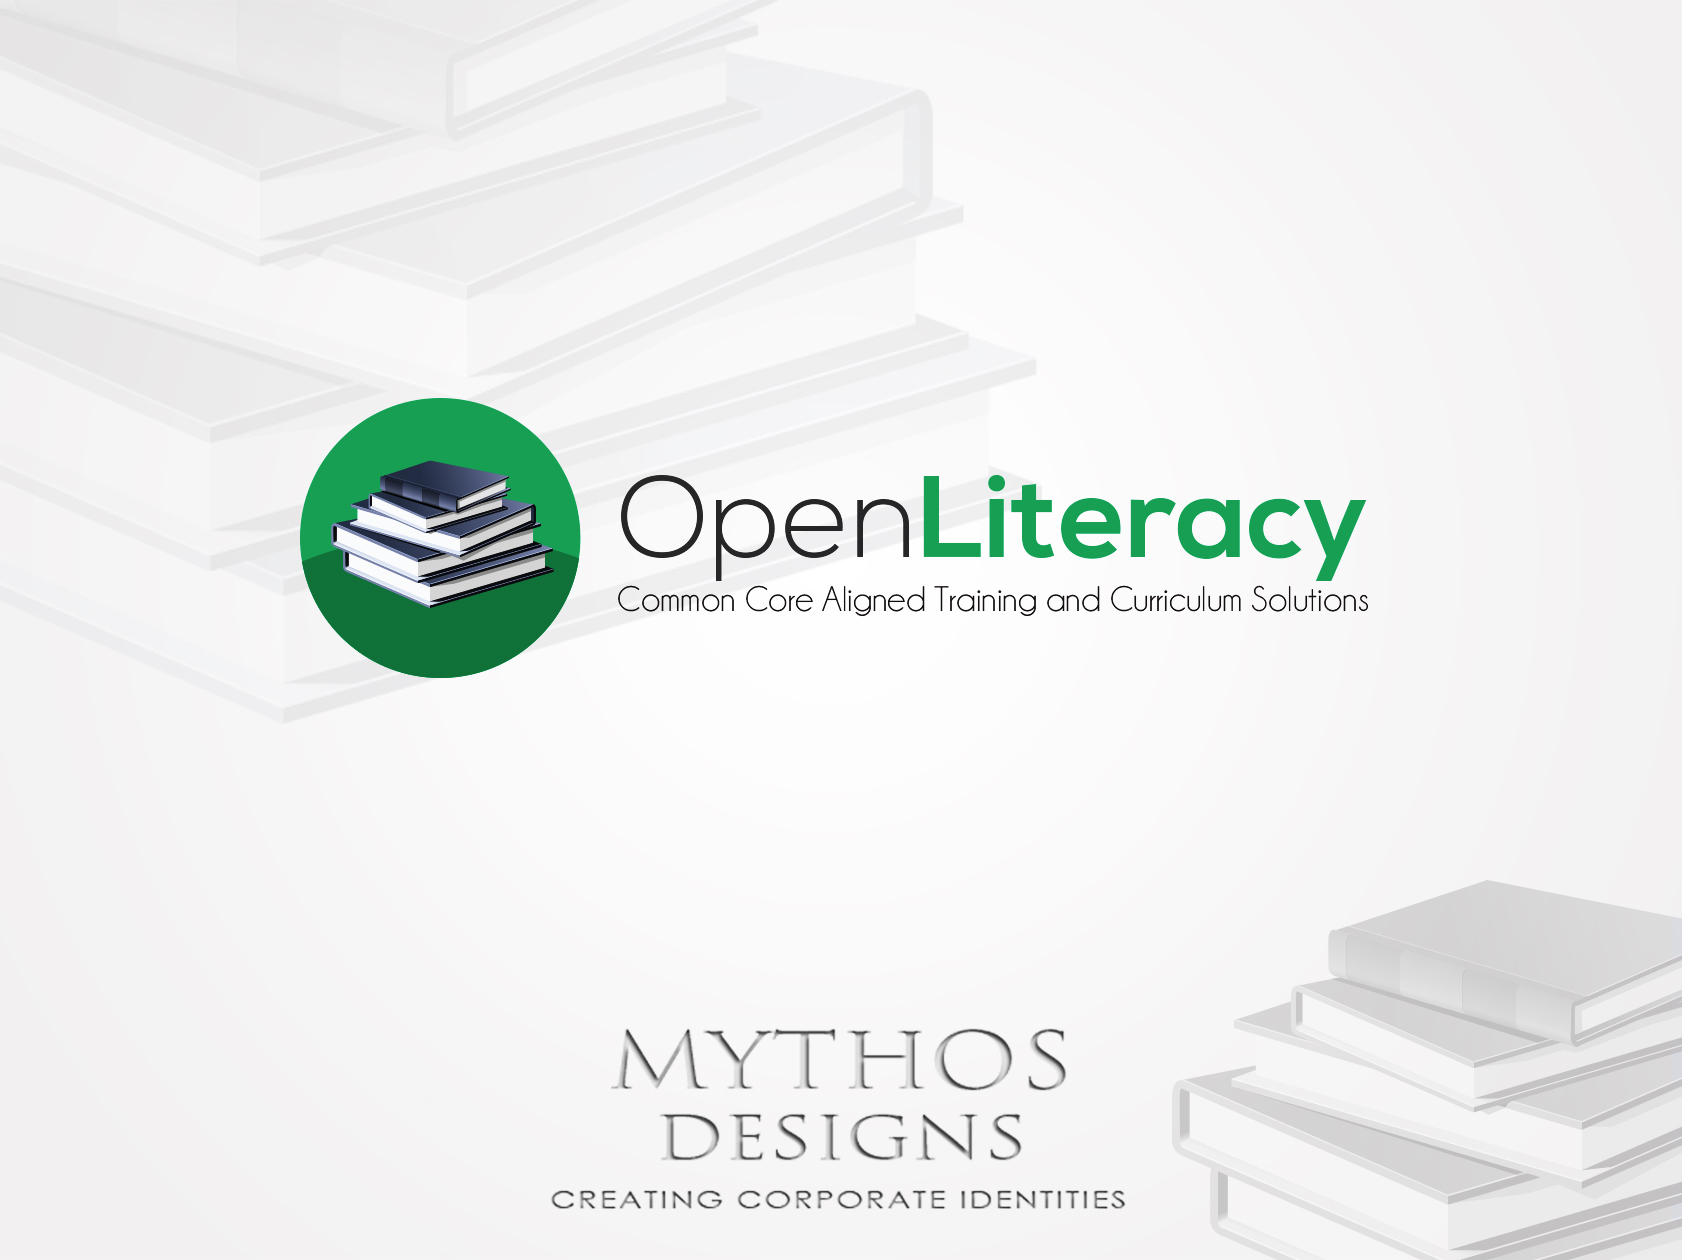 Logo Design by Mythos Designs - Entry No. 99 in the Logo Design Contest Inspiring Logo Design for OpenLiteracy.